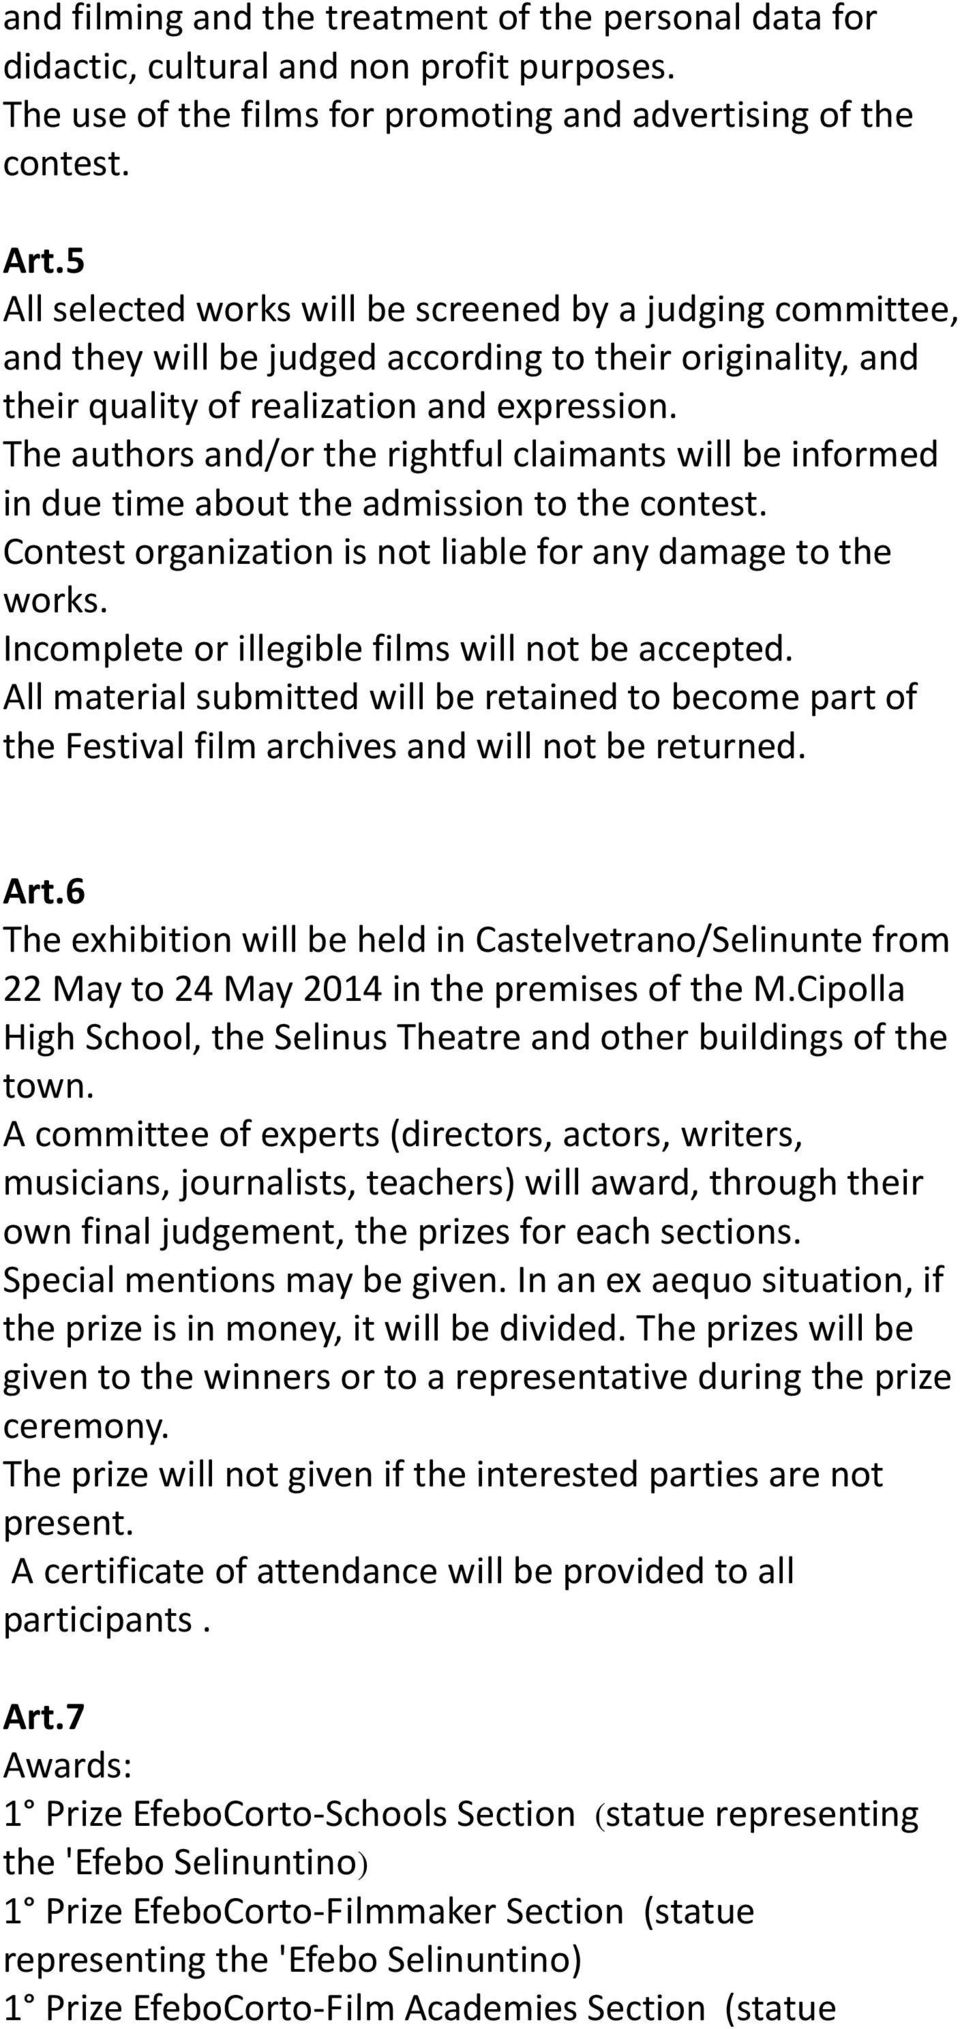 The authors and/or the rightful claimants will be informed in due time about the admission to the contest. Contest organization is not liable for any damage to the works.